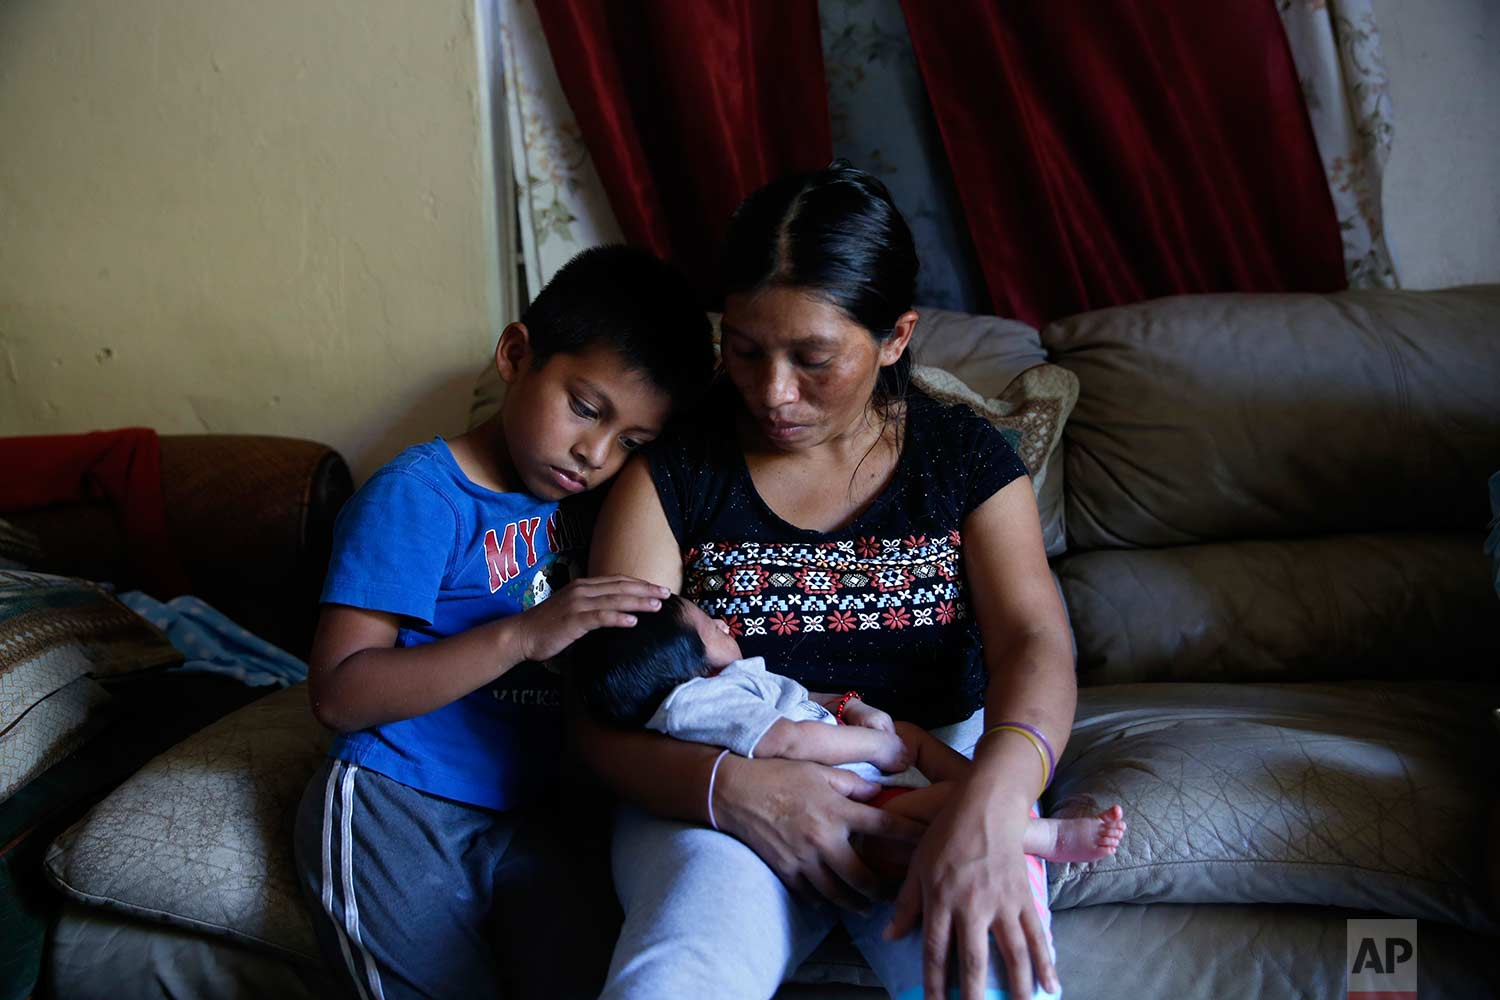 In this Sept. 12, 2017 photo, Aura Gaspar sits with her two-week old baby Ashley, and her son, Isaac, 5, in their home, dark due to a power failure from Hurricane Irma, in Immokalee, Fla. Gaspar said they spent $600 getting ready for Irma, the equivalent of two weeks pay. (AP Photo/Gerald Herbert)